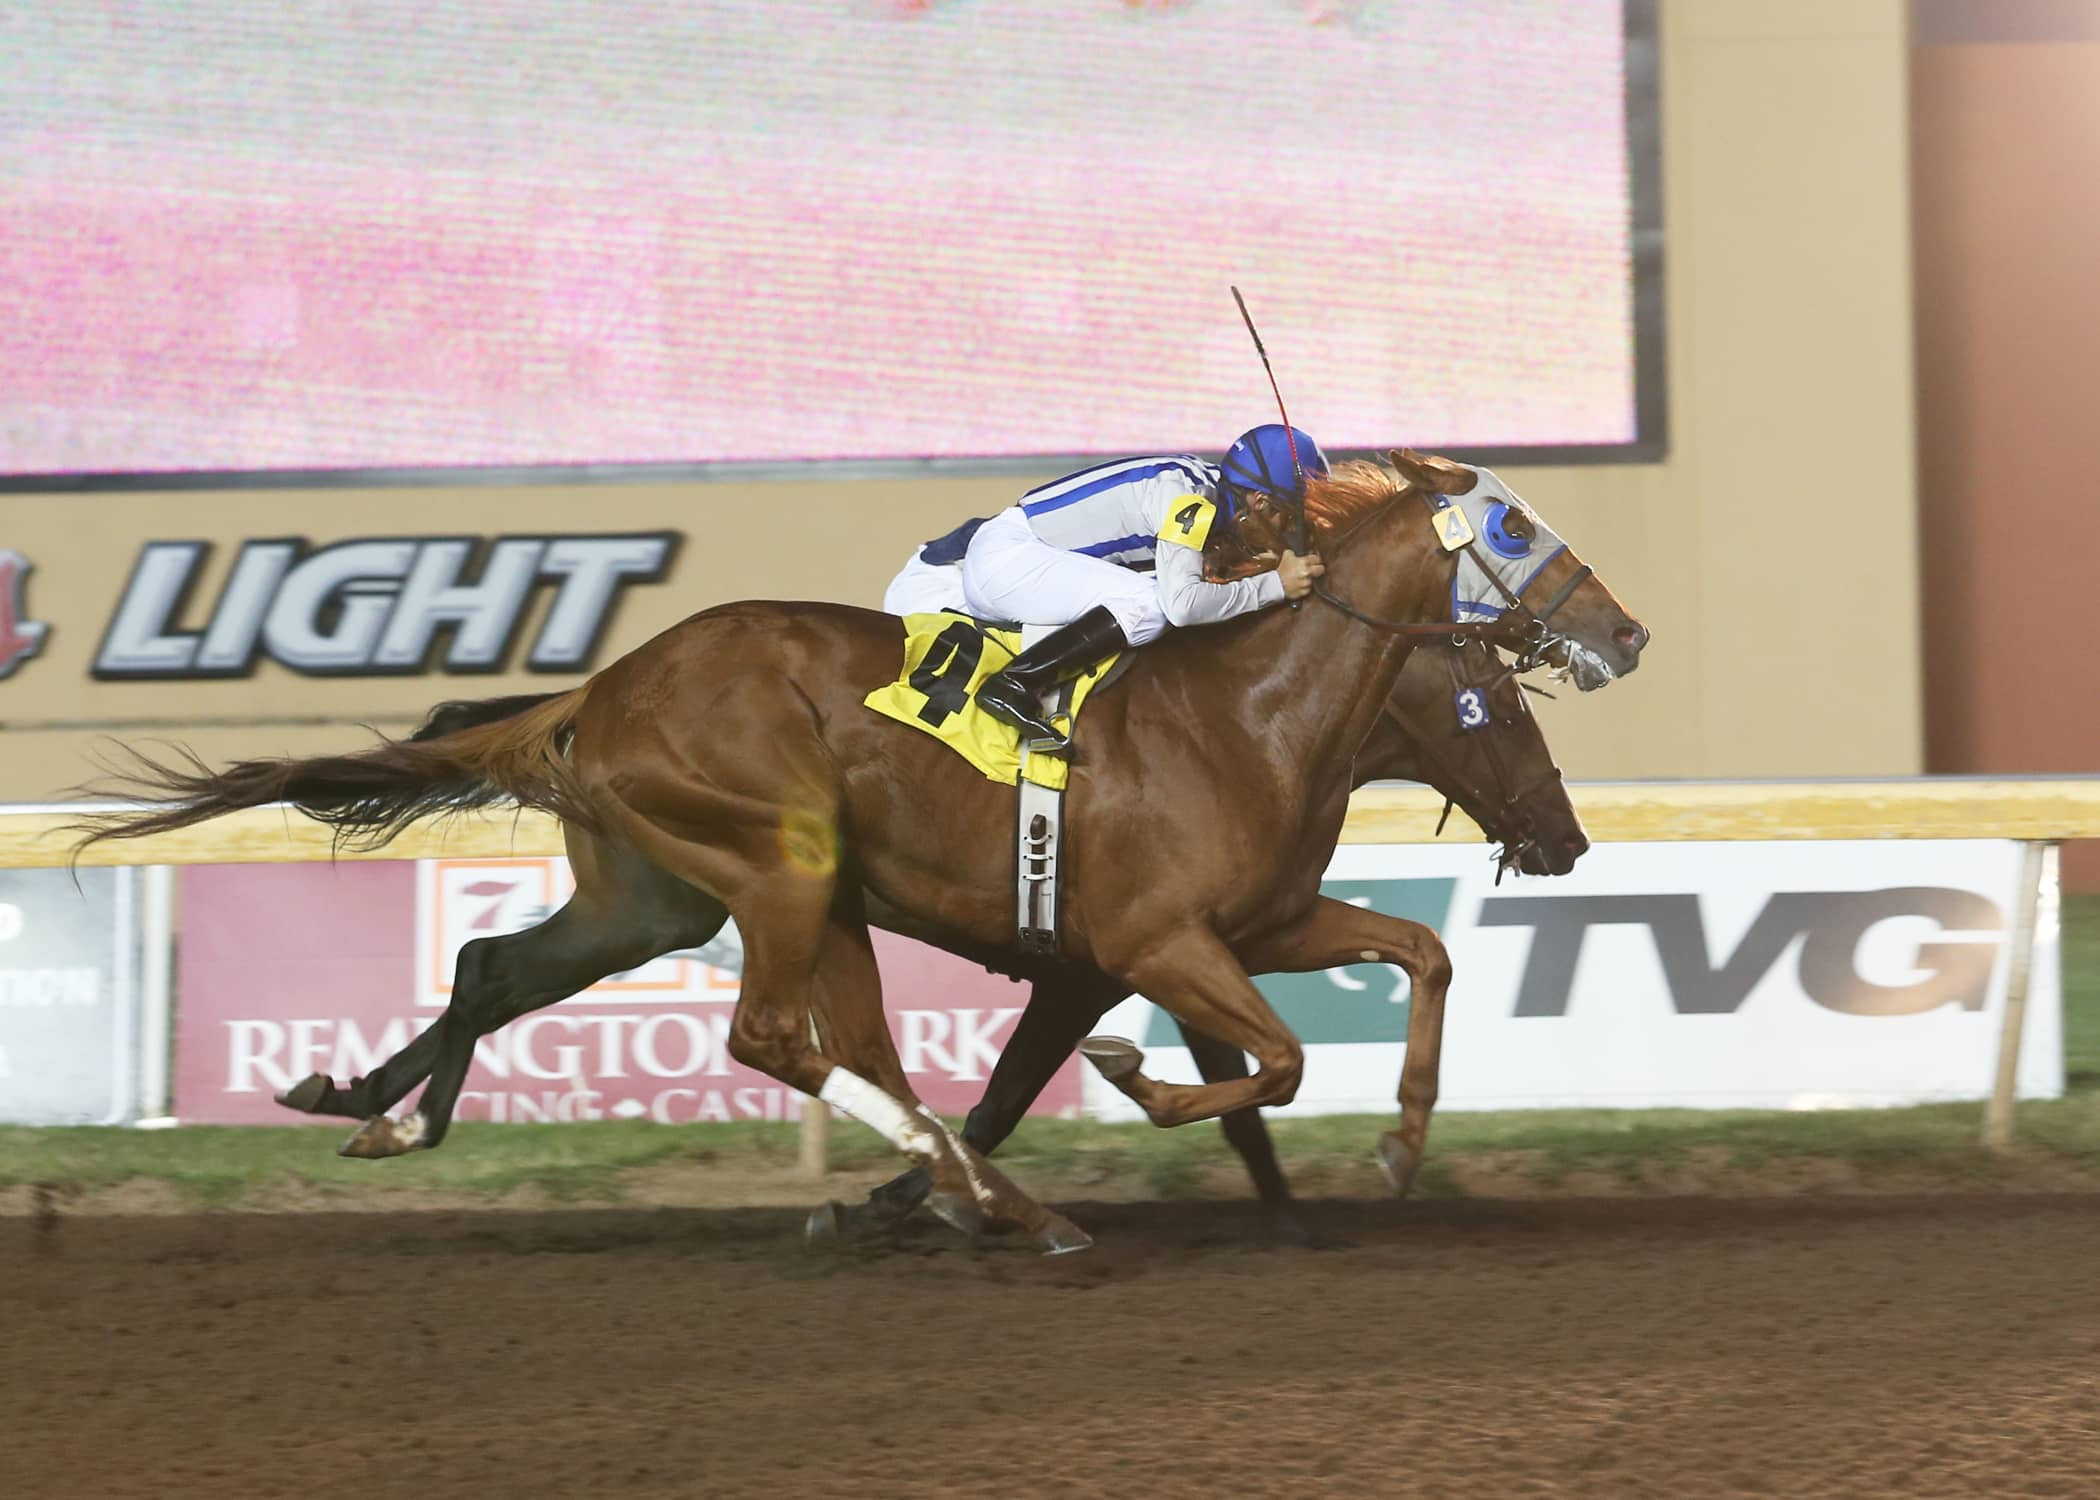 Poseidon's Way (4), under Luis Quinonez, edges Hillbilly Royalty (3) by a head in a Remington Park allowance race on Aug. 22 - Photo credit: Dustin Orona Photography